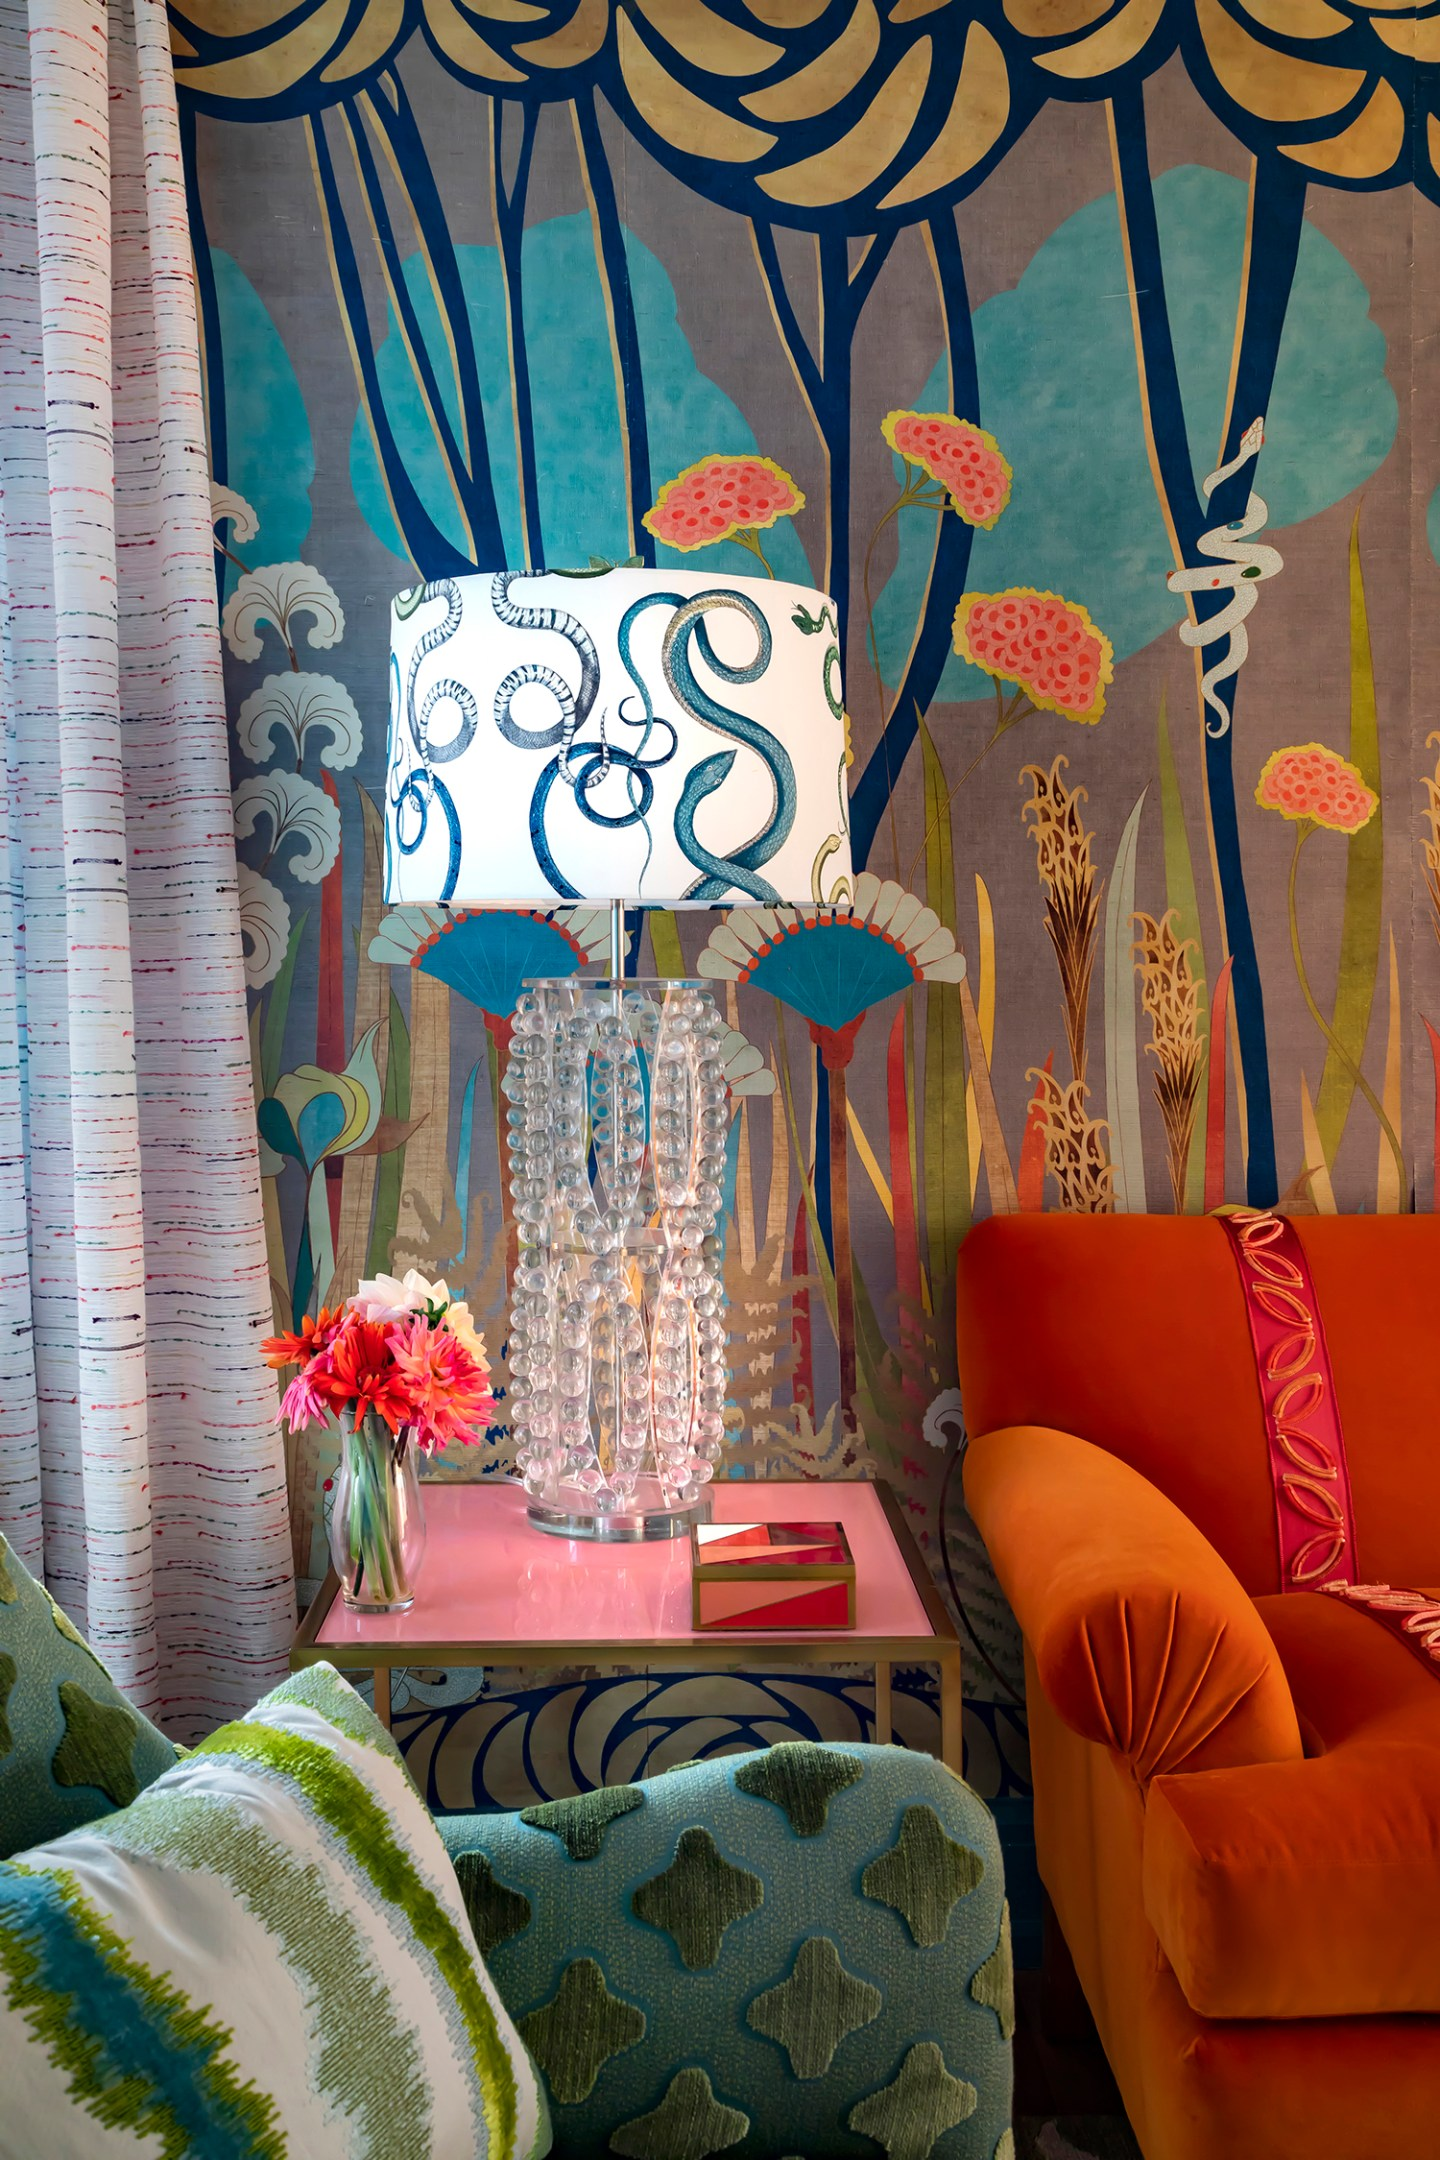 Courtney-McLeod-RMLID-JL-Showhouse_28 Tips for Adding Color and Pattern to a Roomfrom a Louisiana Native